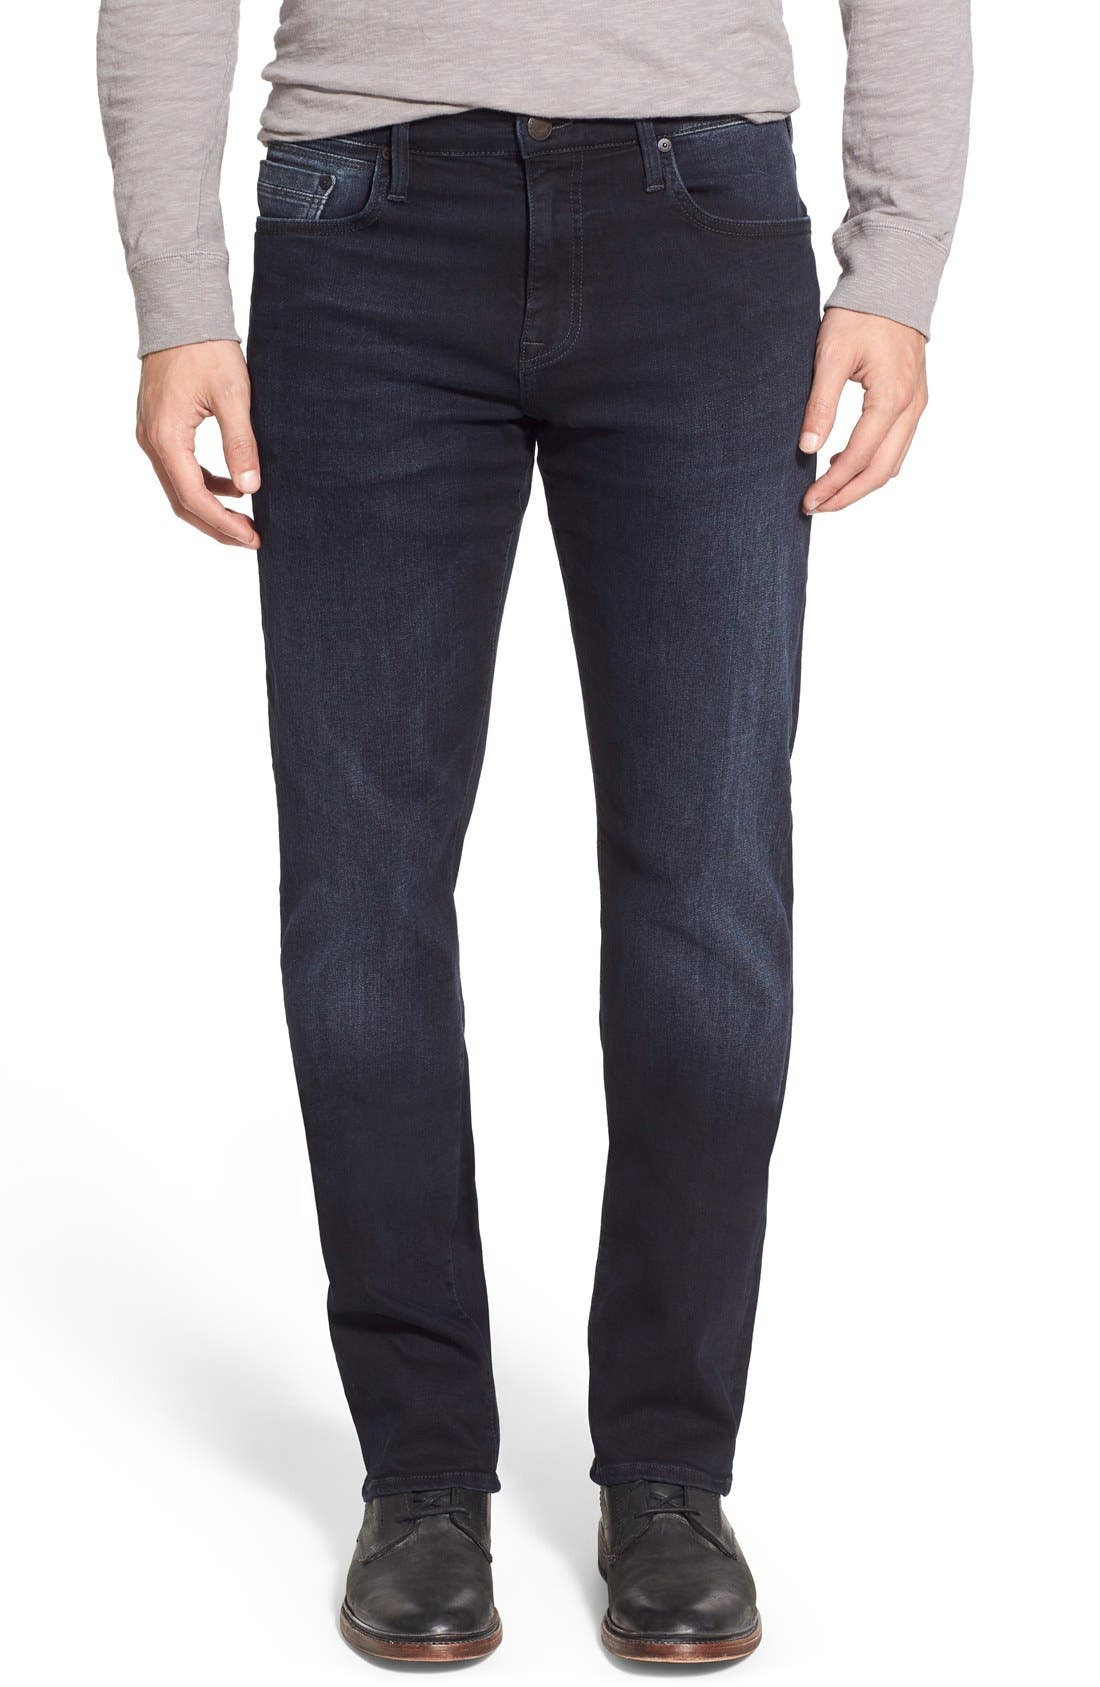 Matt Relaxed Fit Jeans,                         Main,                         color, Ink Williamsburg